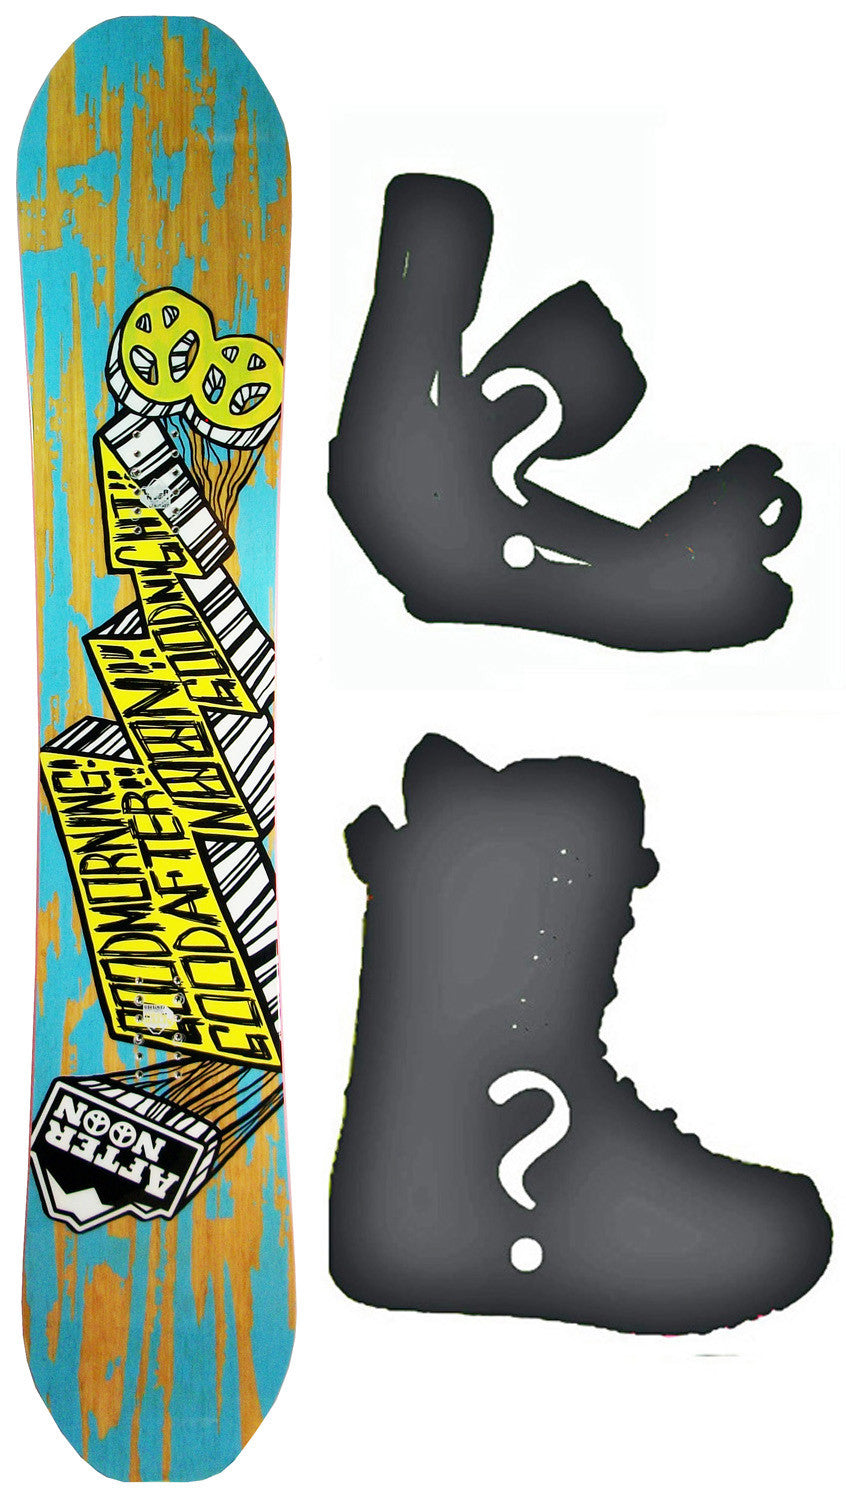 157cm Afternoon Good Morning W-Camber Snowboard, Build a Package with Boots and Bindings